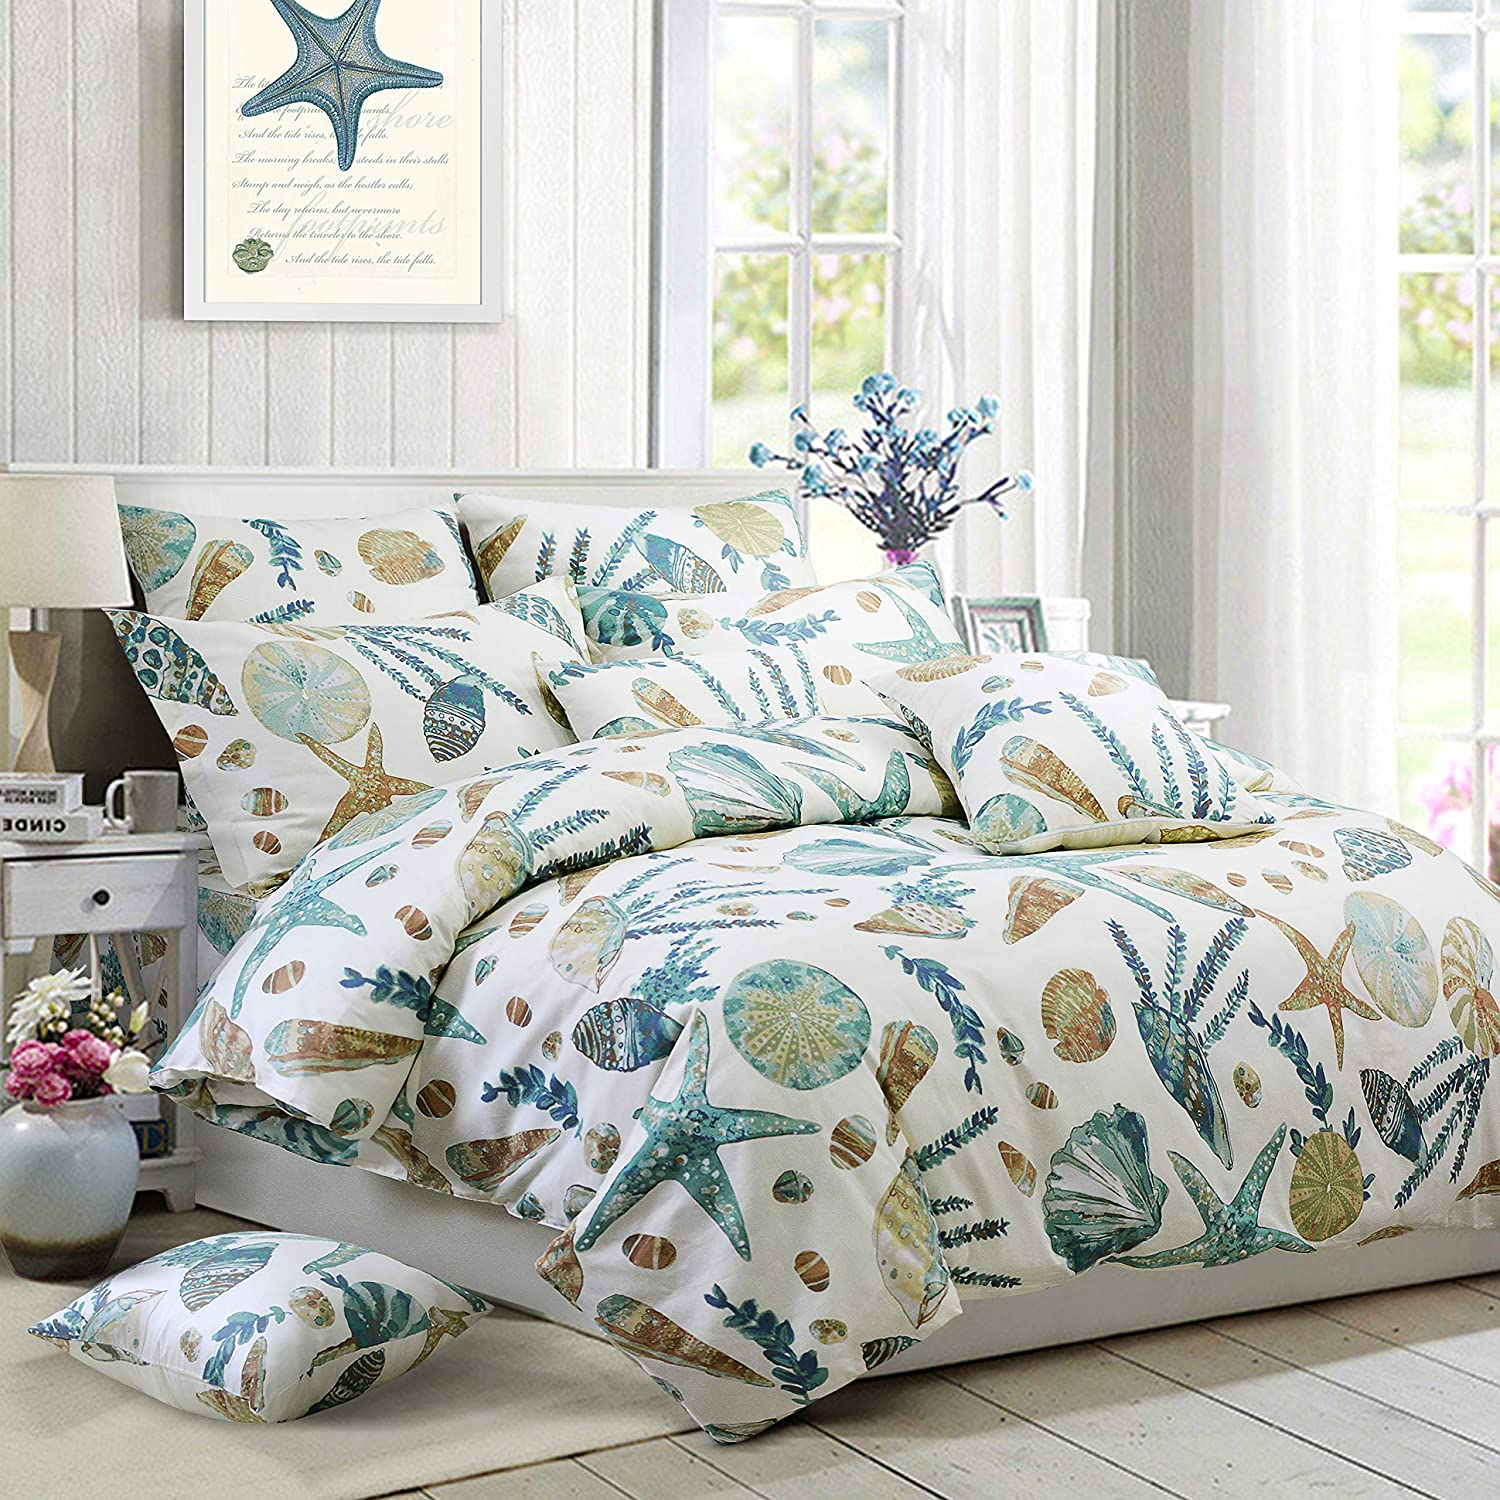 FADFAY Duvet Cover Set Queen Beach Themed Bedding Sets 100% Cotton Super Soft Coastal Bedding White Teal Seashells and Starfish Nautical Bedding with Hidden Zipper Closure 3 Pieces Queen Size